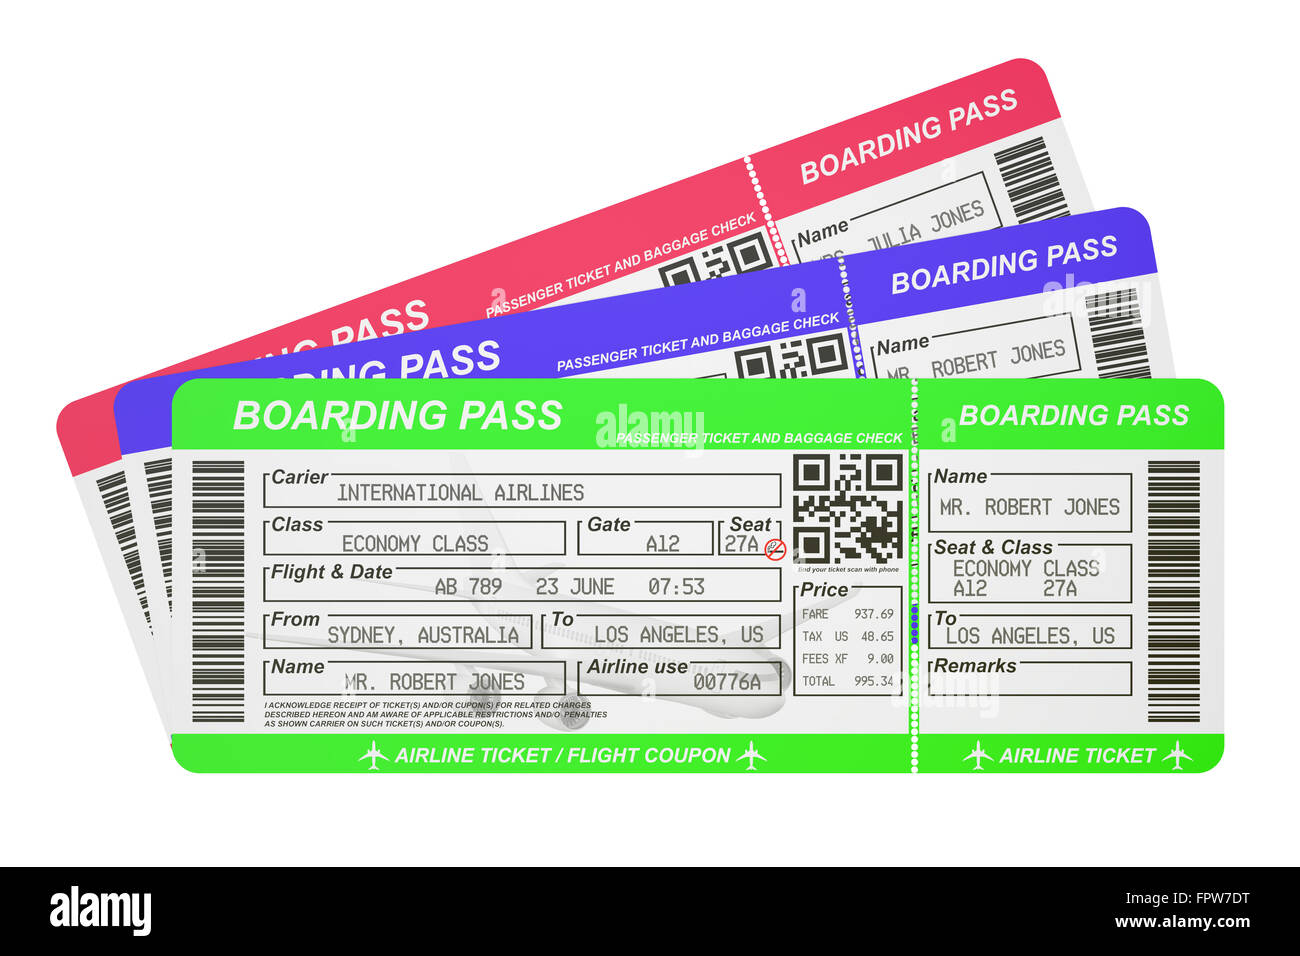 Boarding Pass Tickets Isolated On White Background Stock Photo